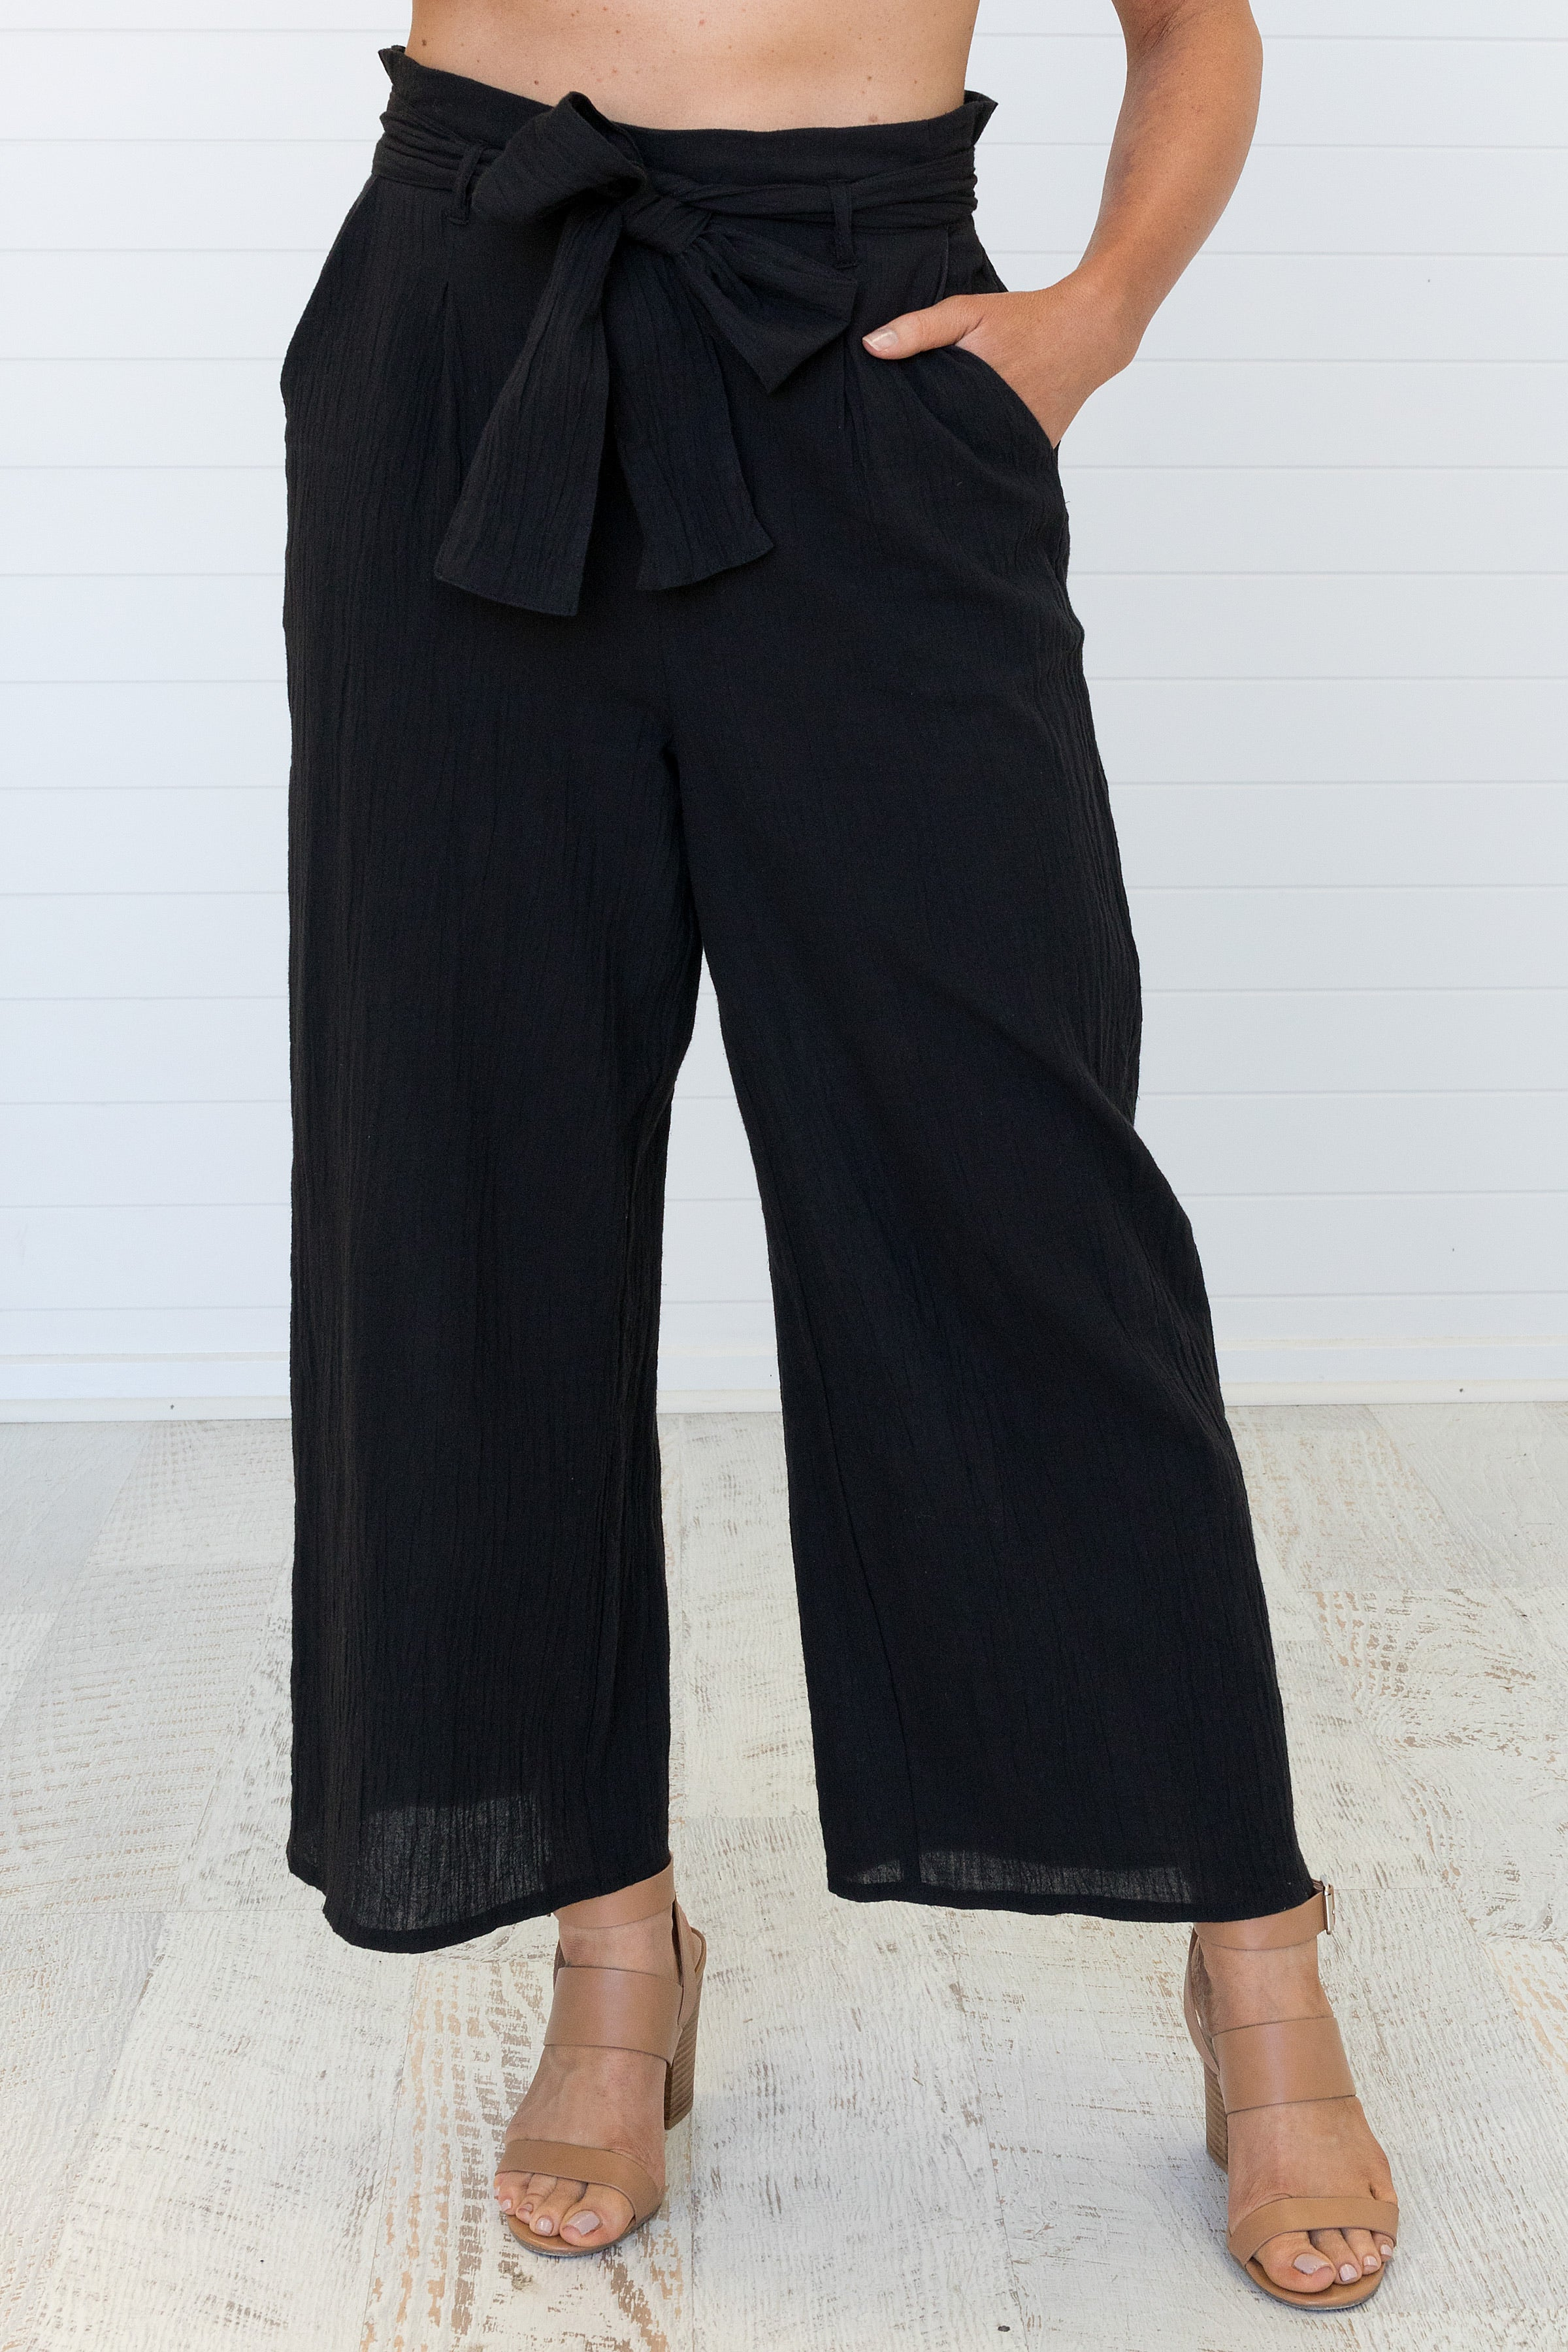 Jake Pants Black - Was $49.95